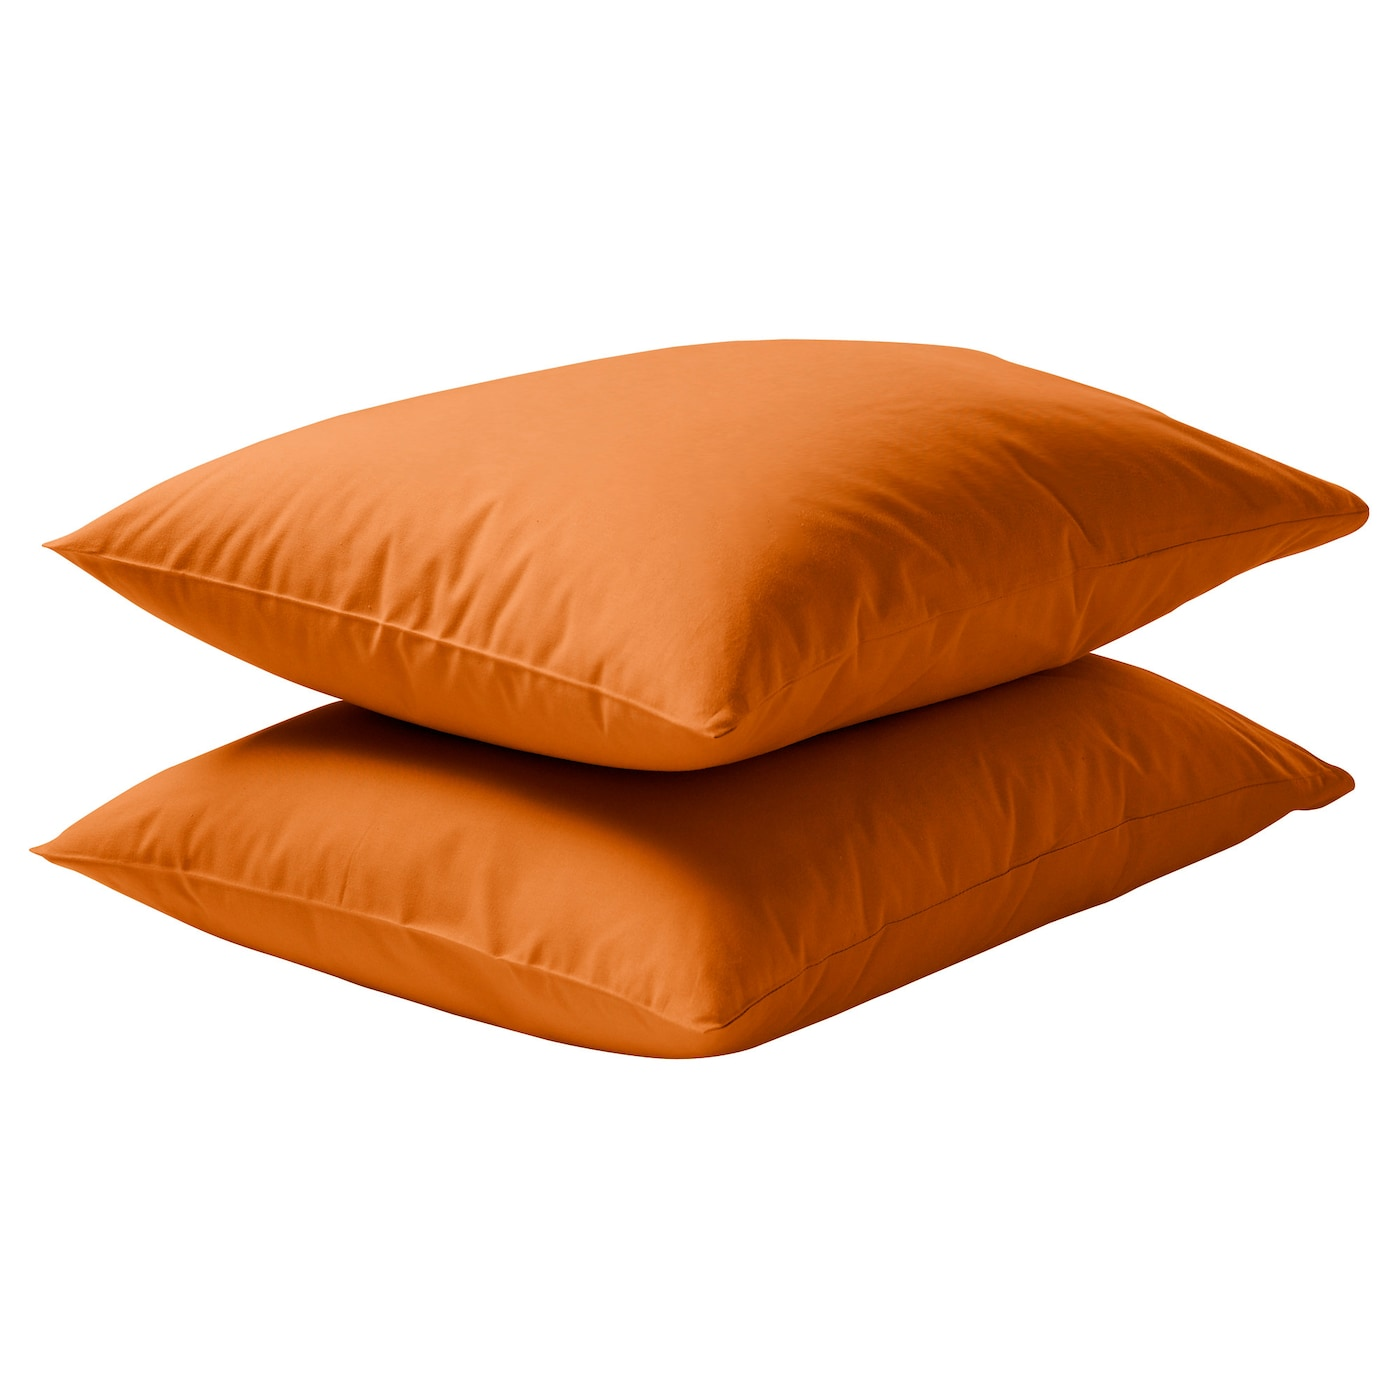 DVALA Pillowcase Orange 50×80 cm  IKEA